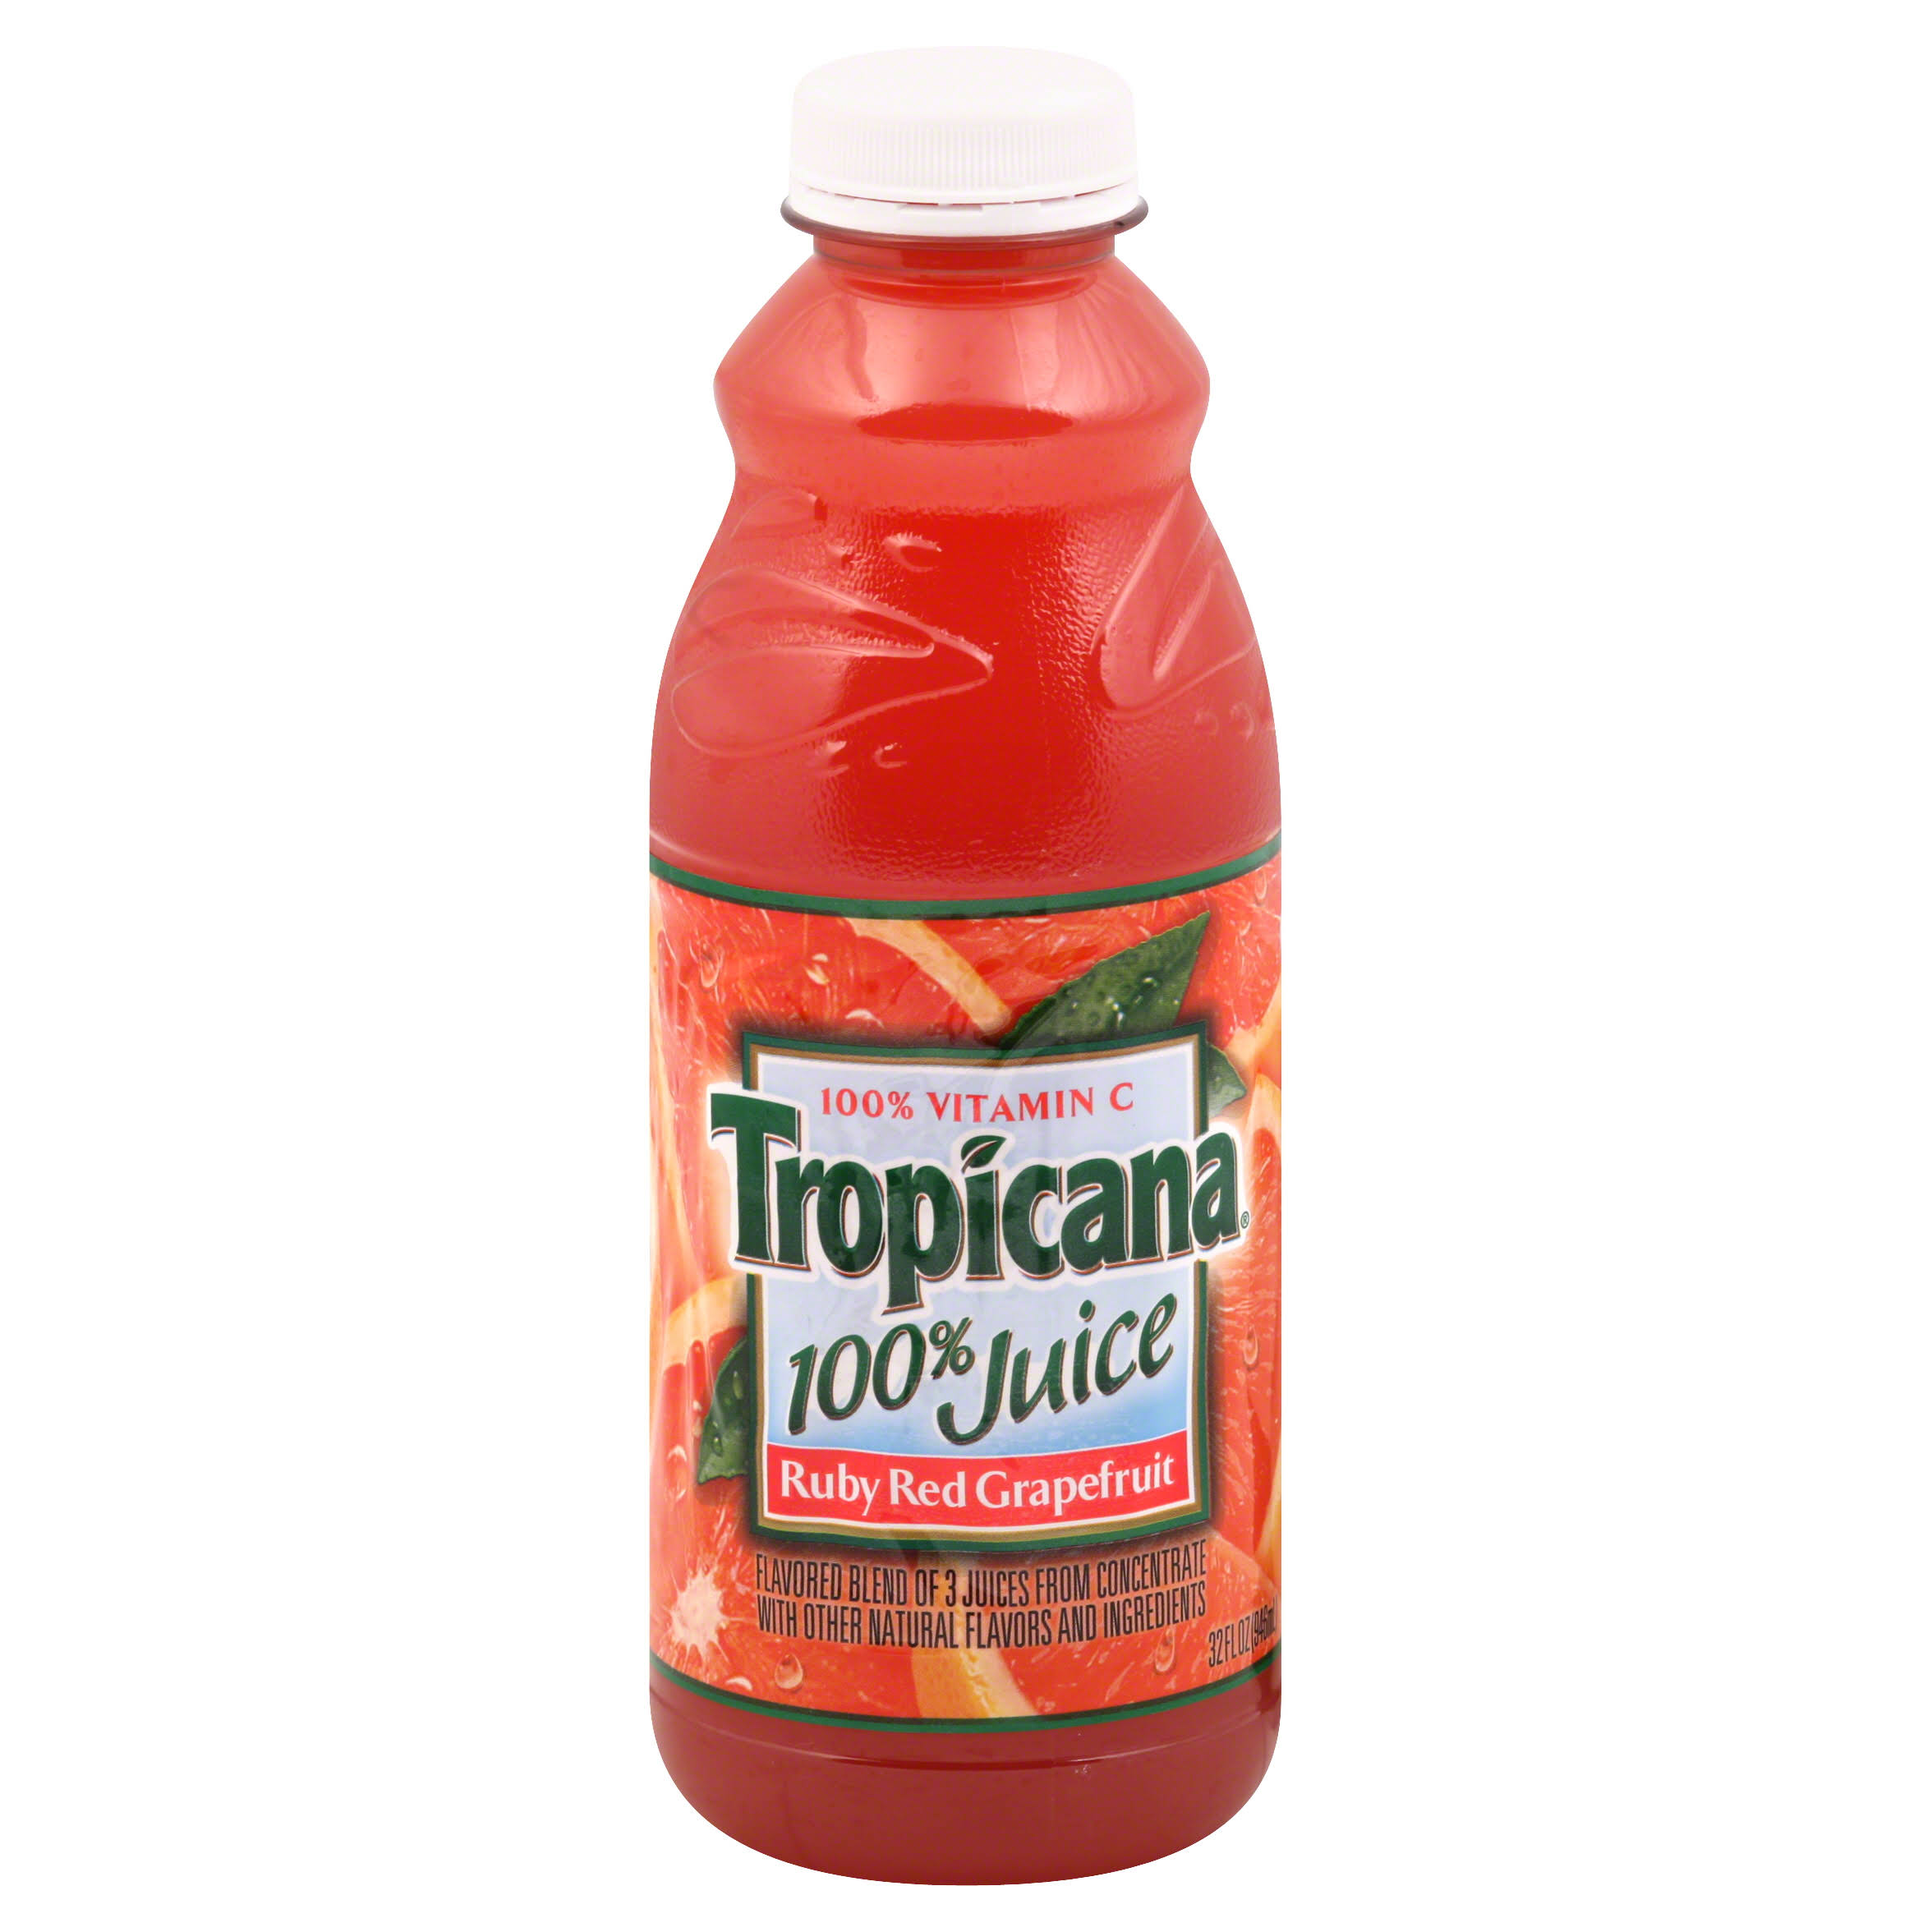 Tropicana Juice - Ruby Red Grapefruit